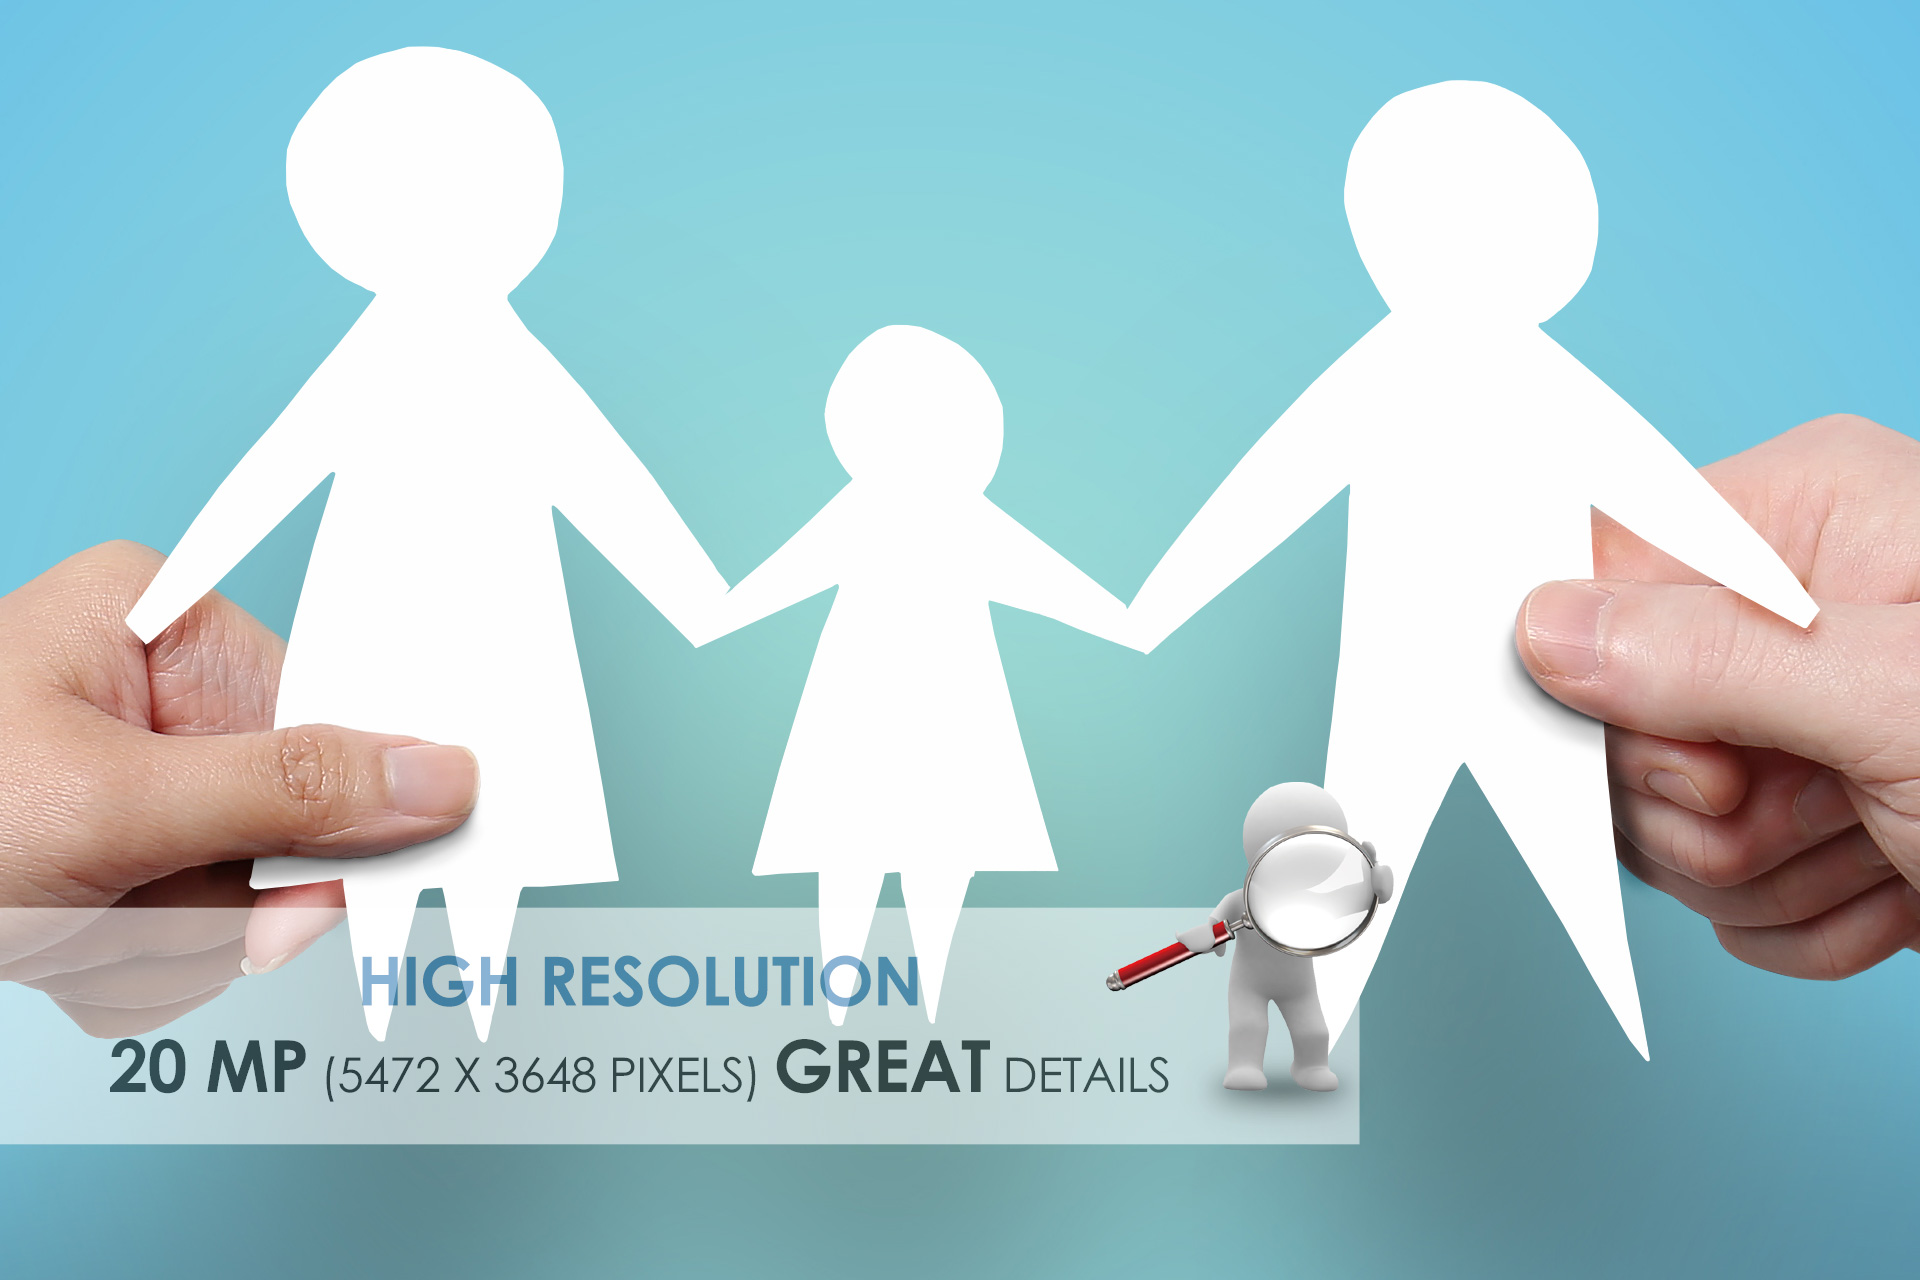 Hands Holding Family, Paper Cut Out - Stock Photo example image 2